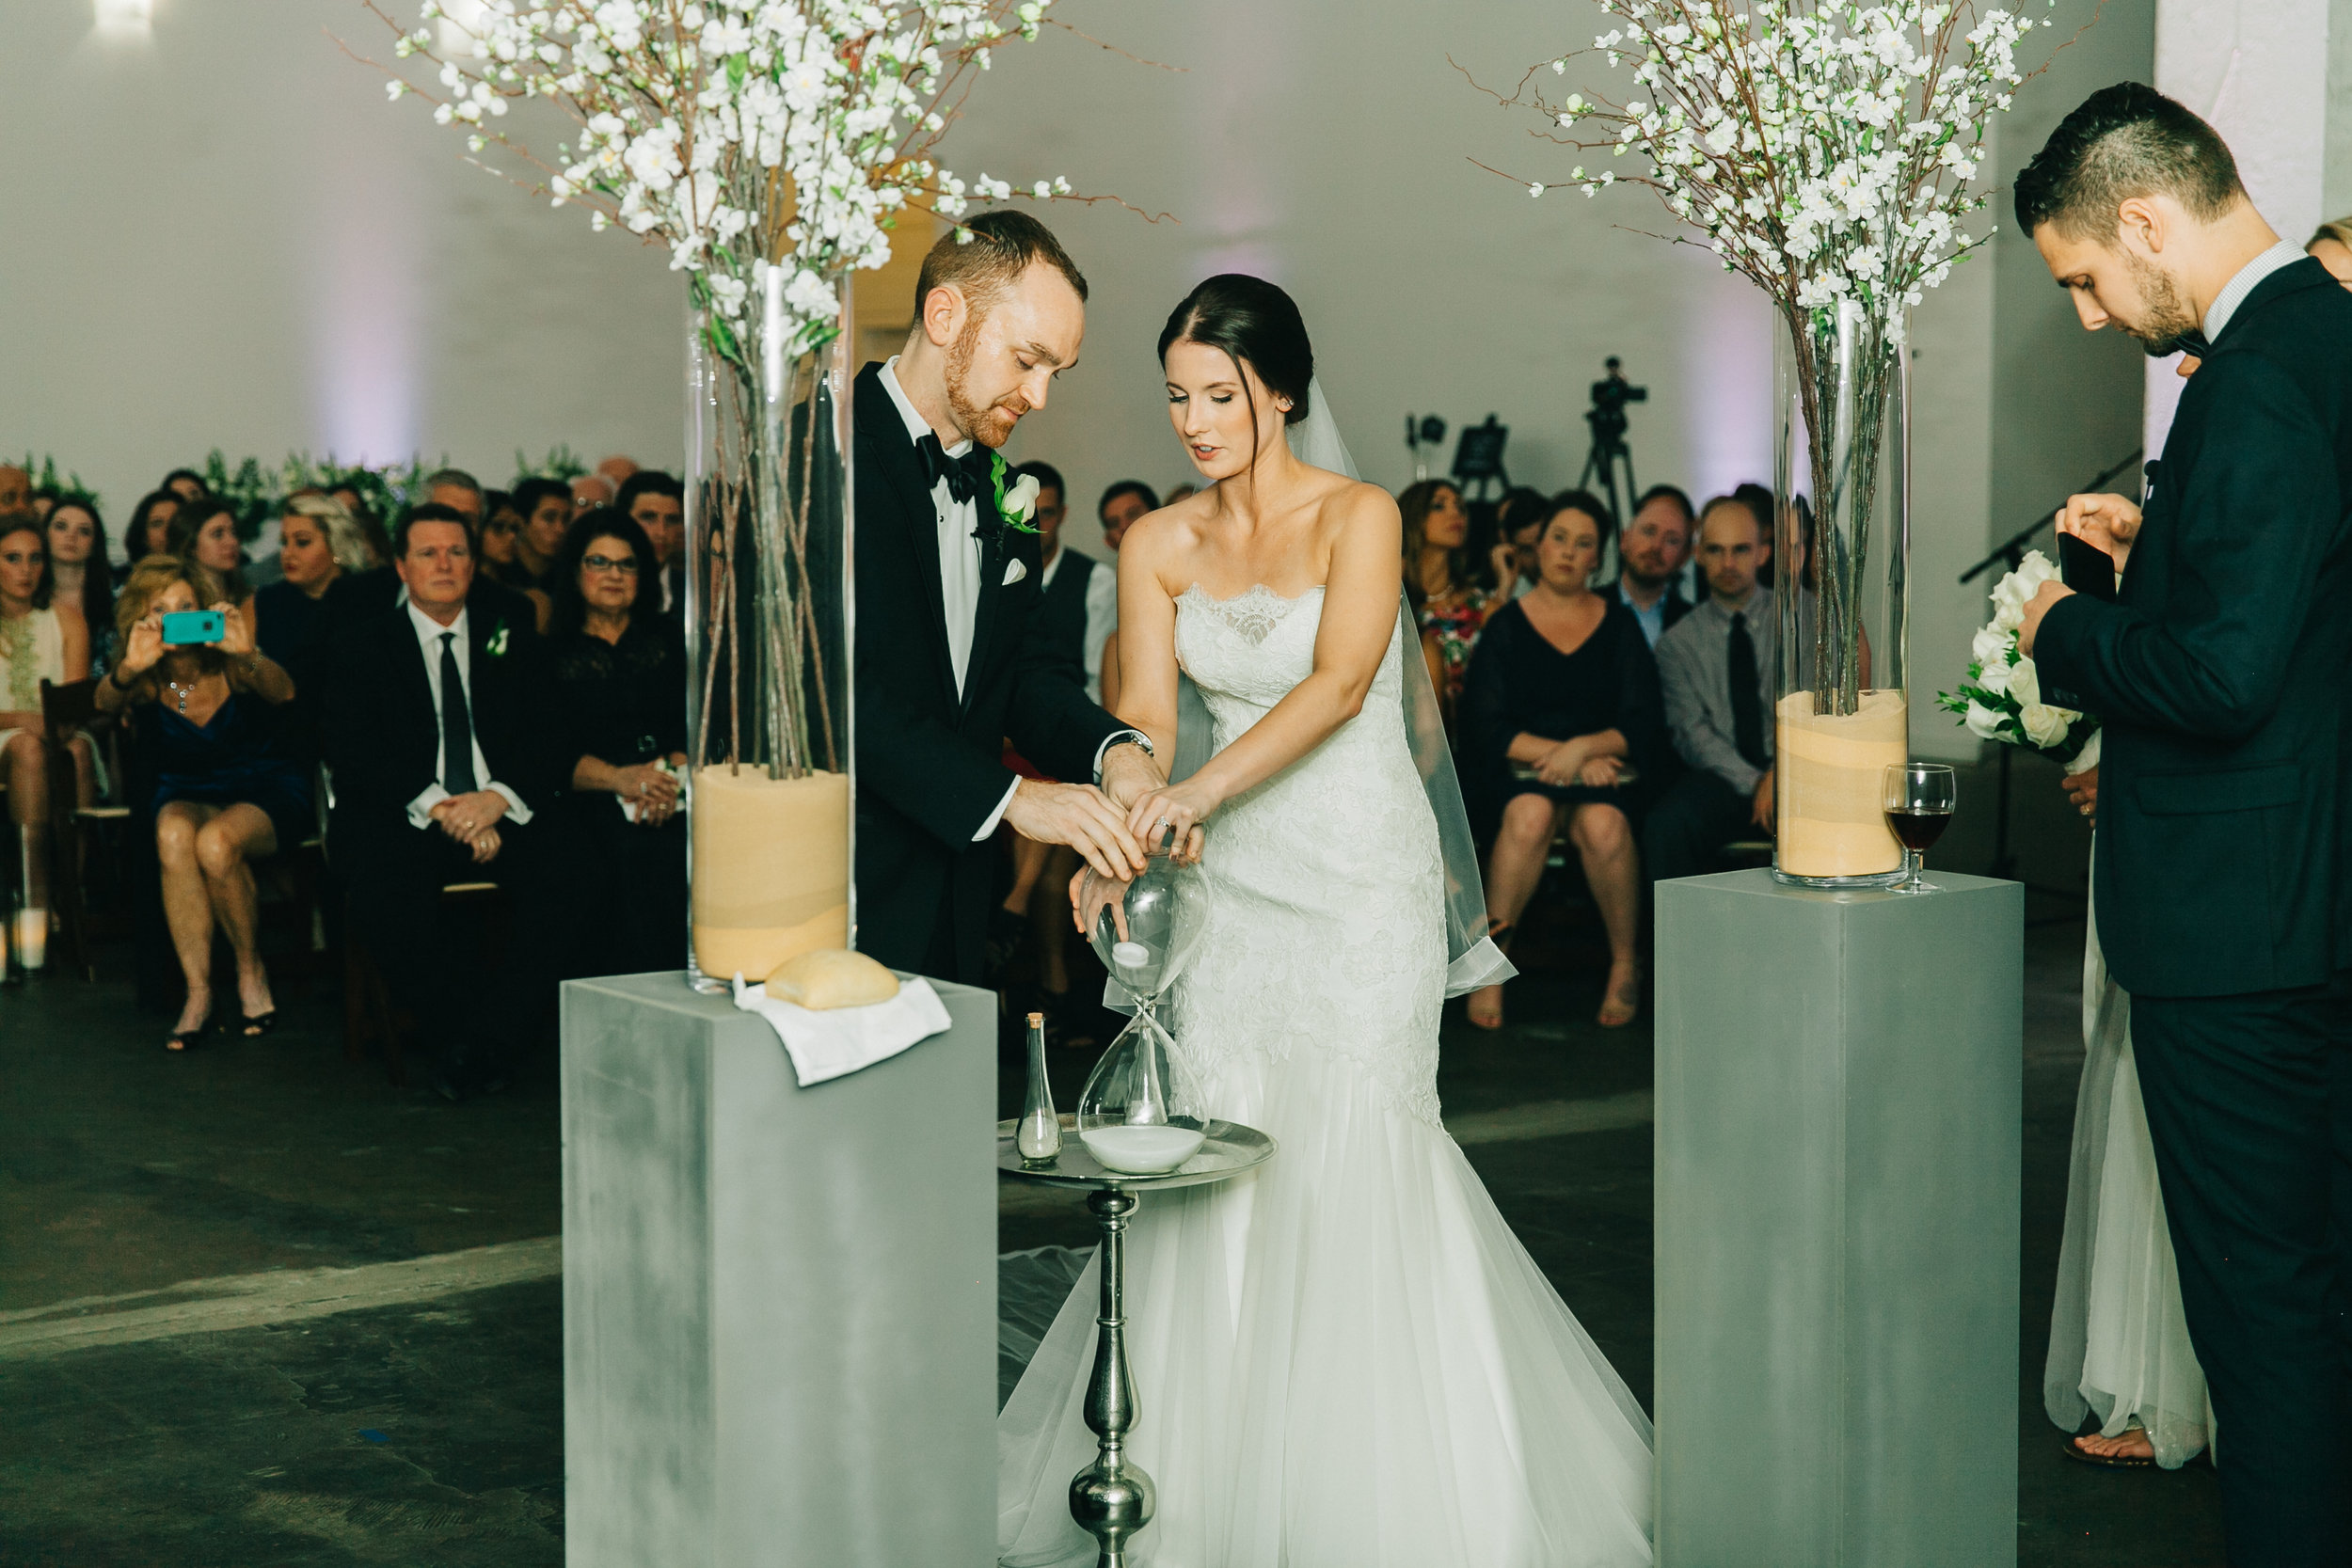 Tampa Industrial wedding at the Rialto Theater_107.jpg